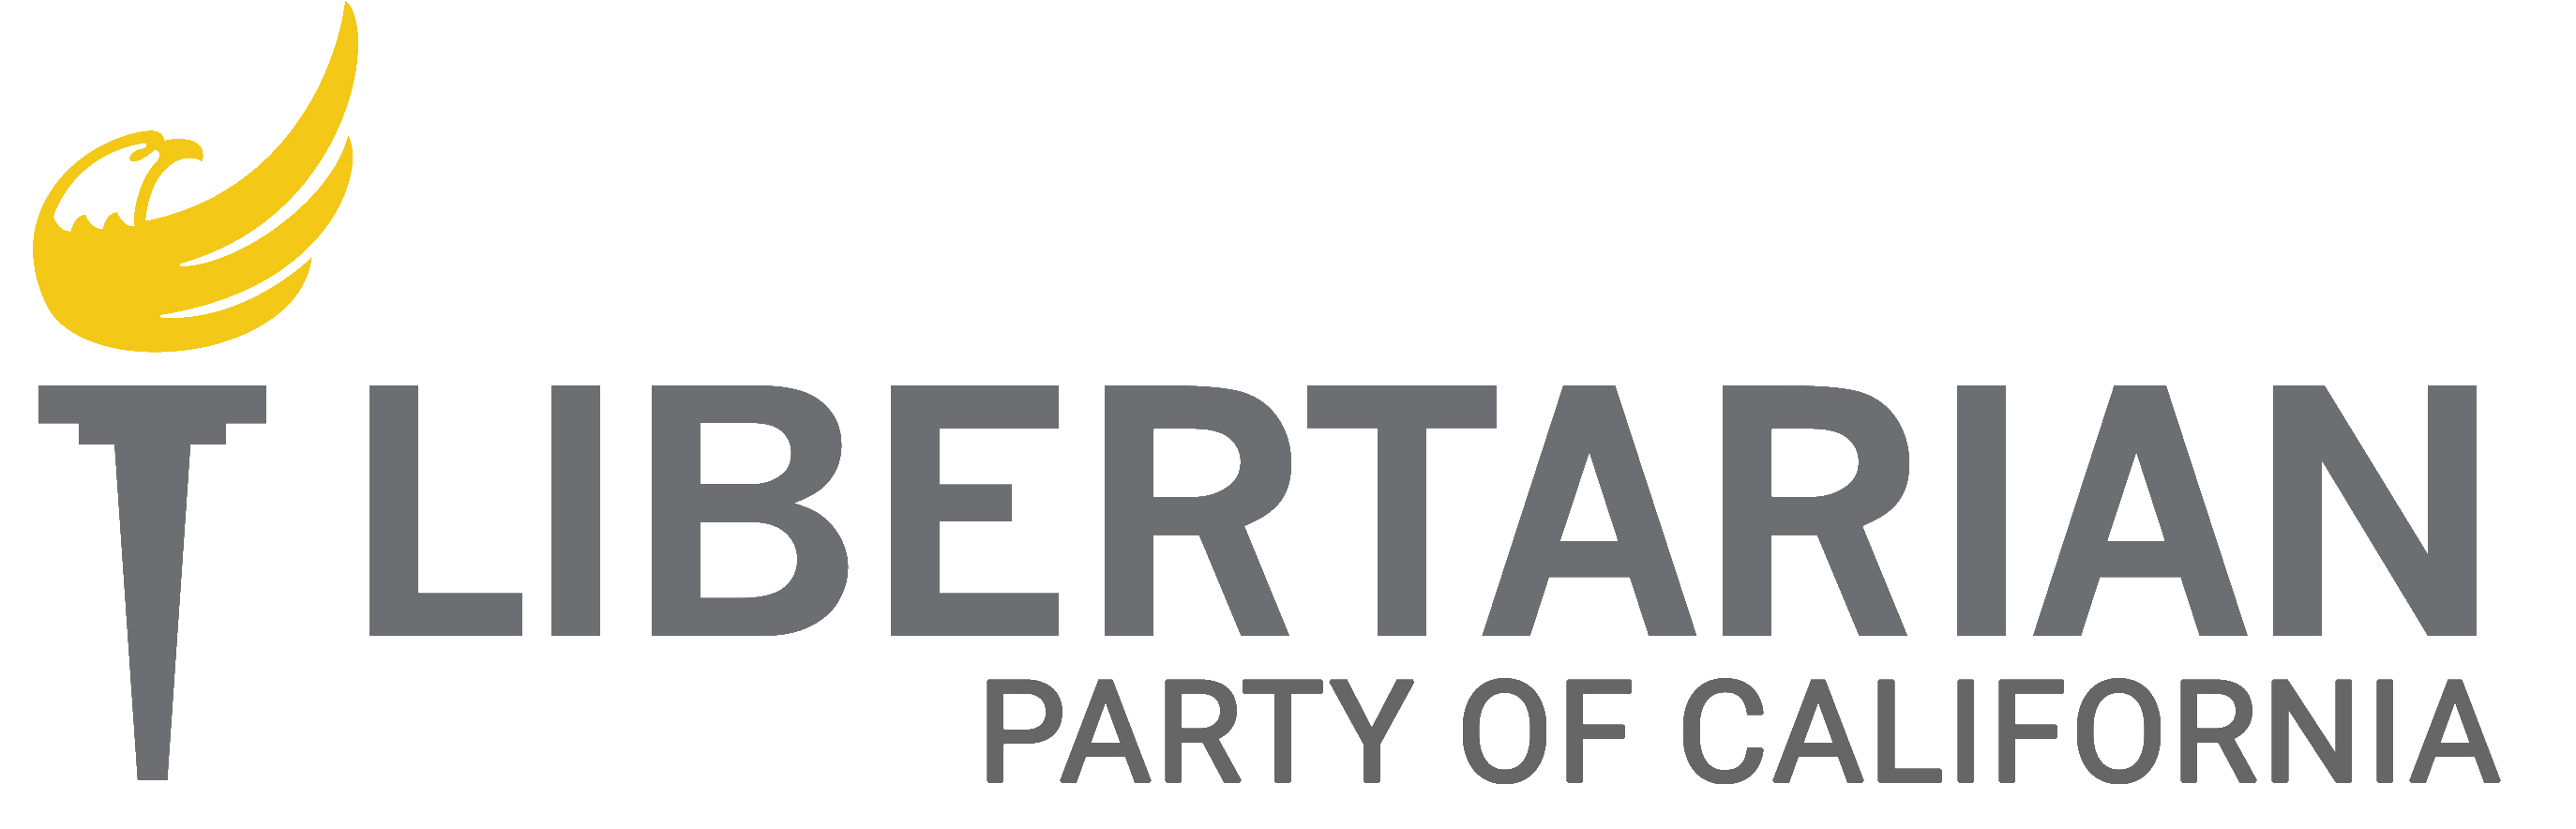 Libertarian Party of California